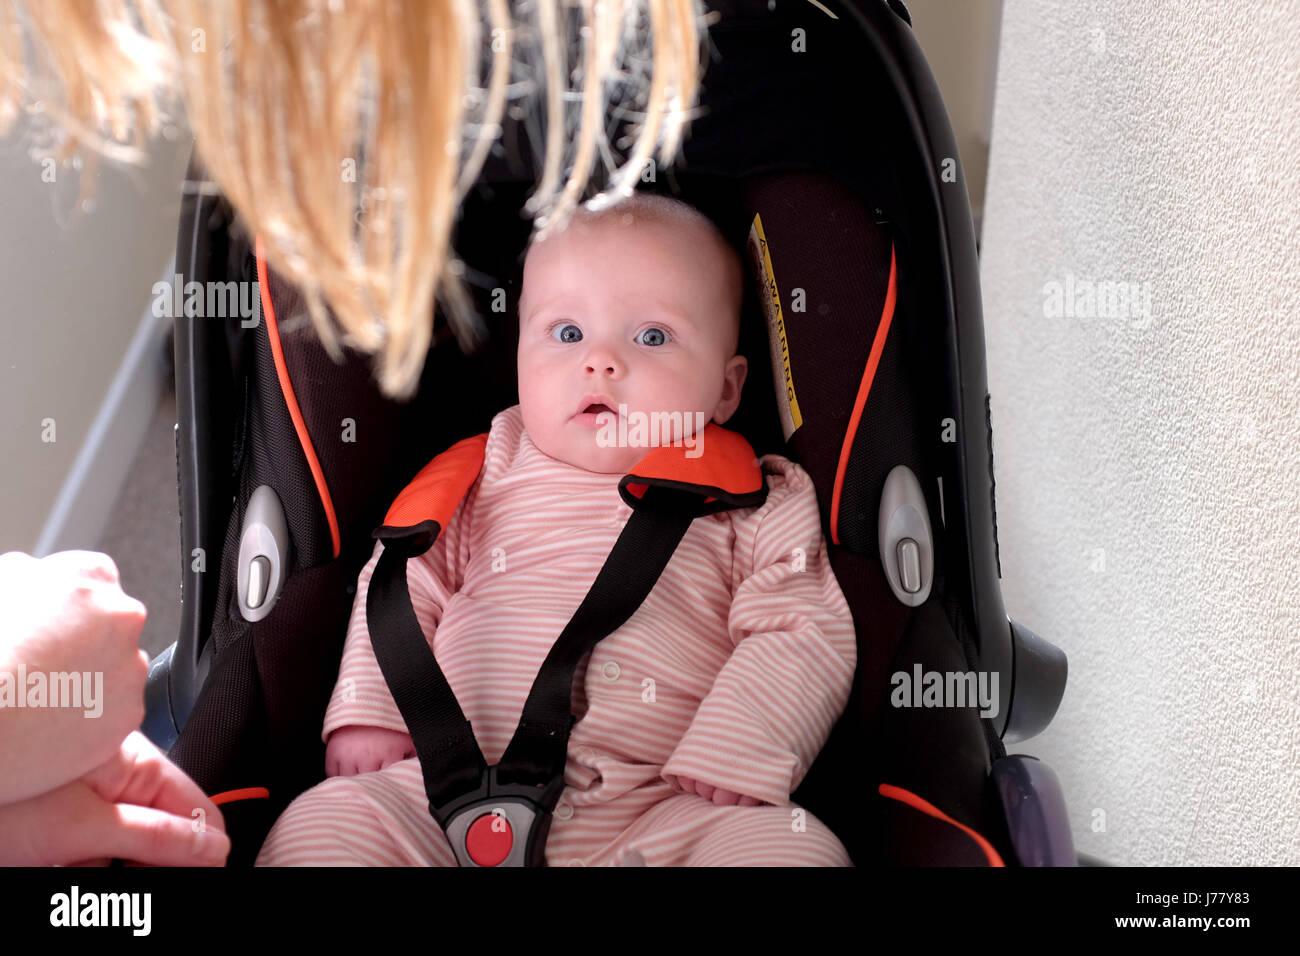 baby girl looking up strapped into a convertible car seat - Stock Image